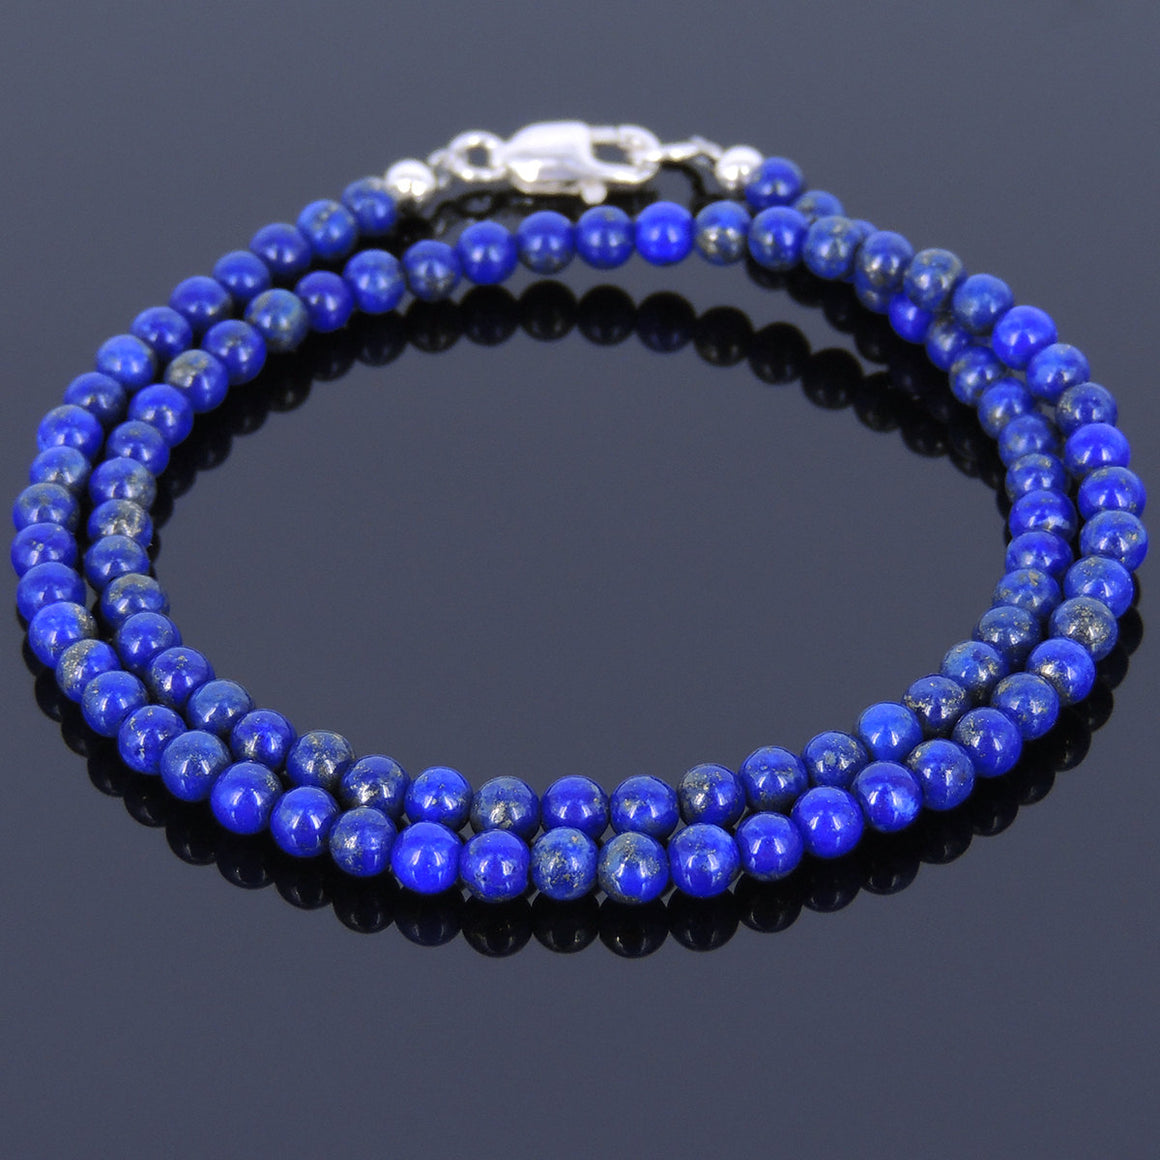 3.5mm Lapis Lazuli Double-Wrap Healing Gemstone Bracelet with S925 Sterling Silver Spacer Beads & Clasp - Handmade by Gem & Silver BR518